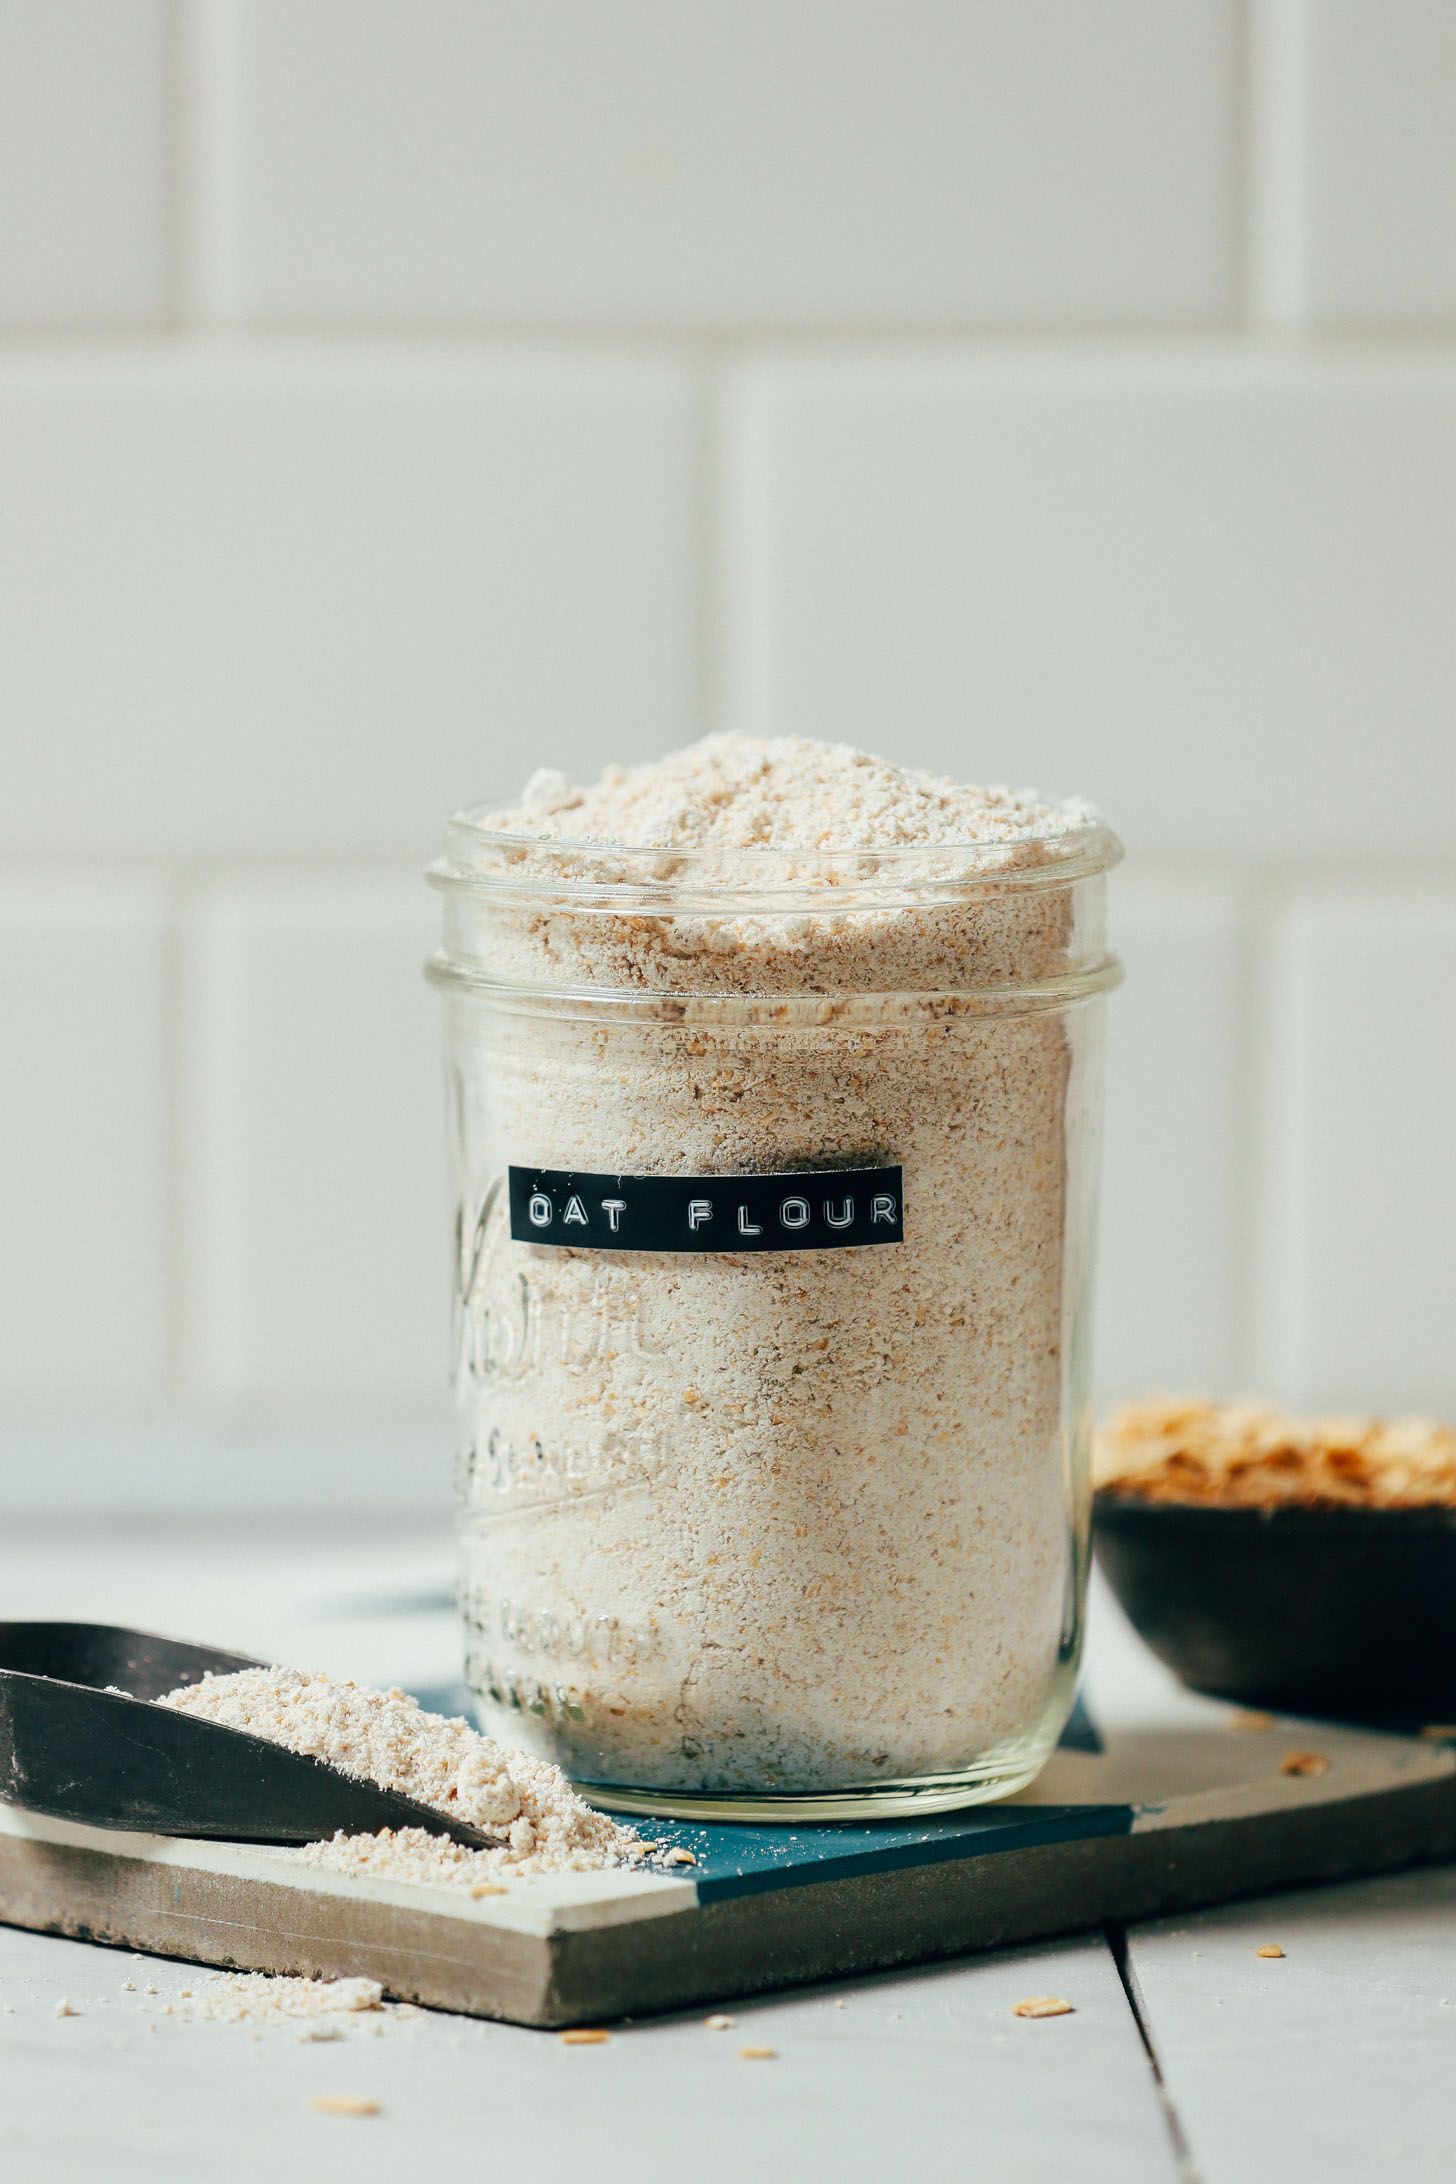 Scoop and jar of homemade oat flour made with our DIY Tutorial on How to Make Oat Flour